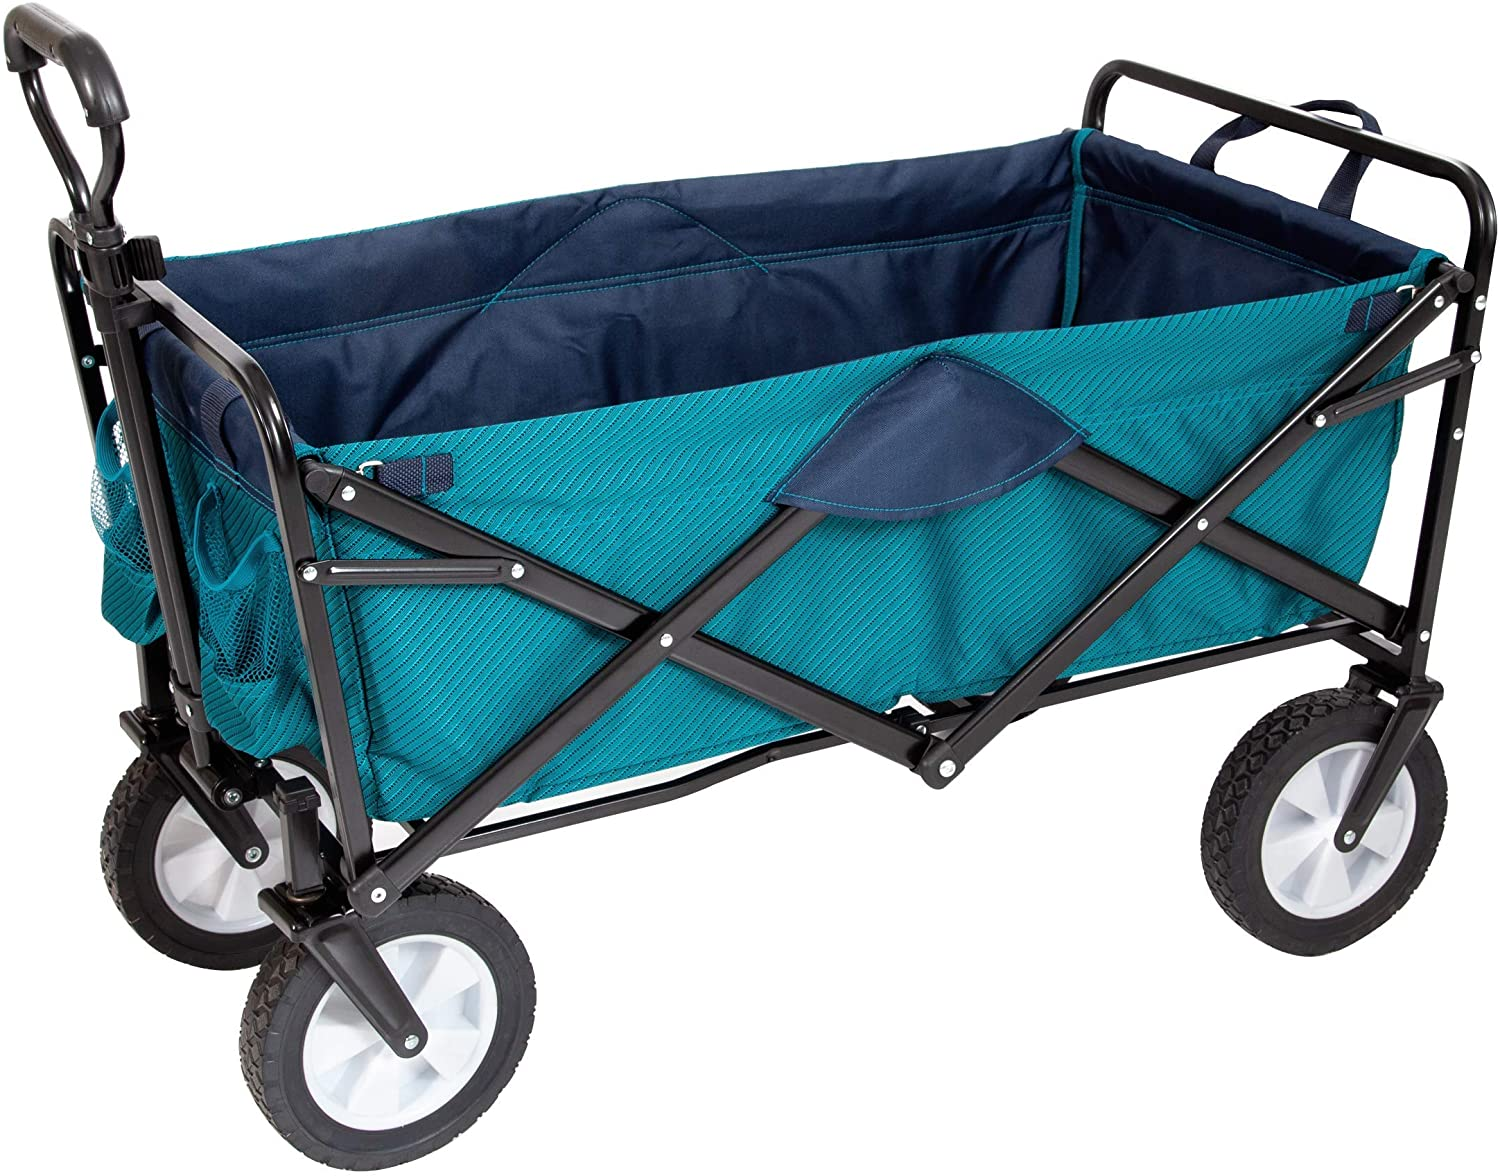 MacSports Classic Collapsible Folding Outdoor Utility Wagon | Heavy Duty Wheelbarrow Cart w/Wheels for Groceries, Sports Equipment, Gardening, Camping, Tailgating | Two-Tone Colors